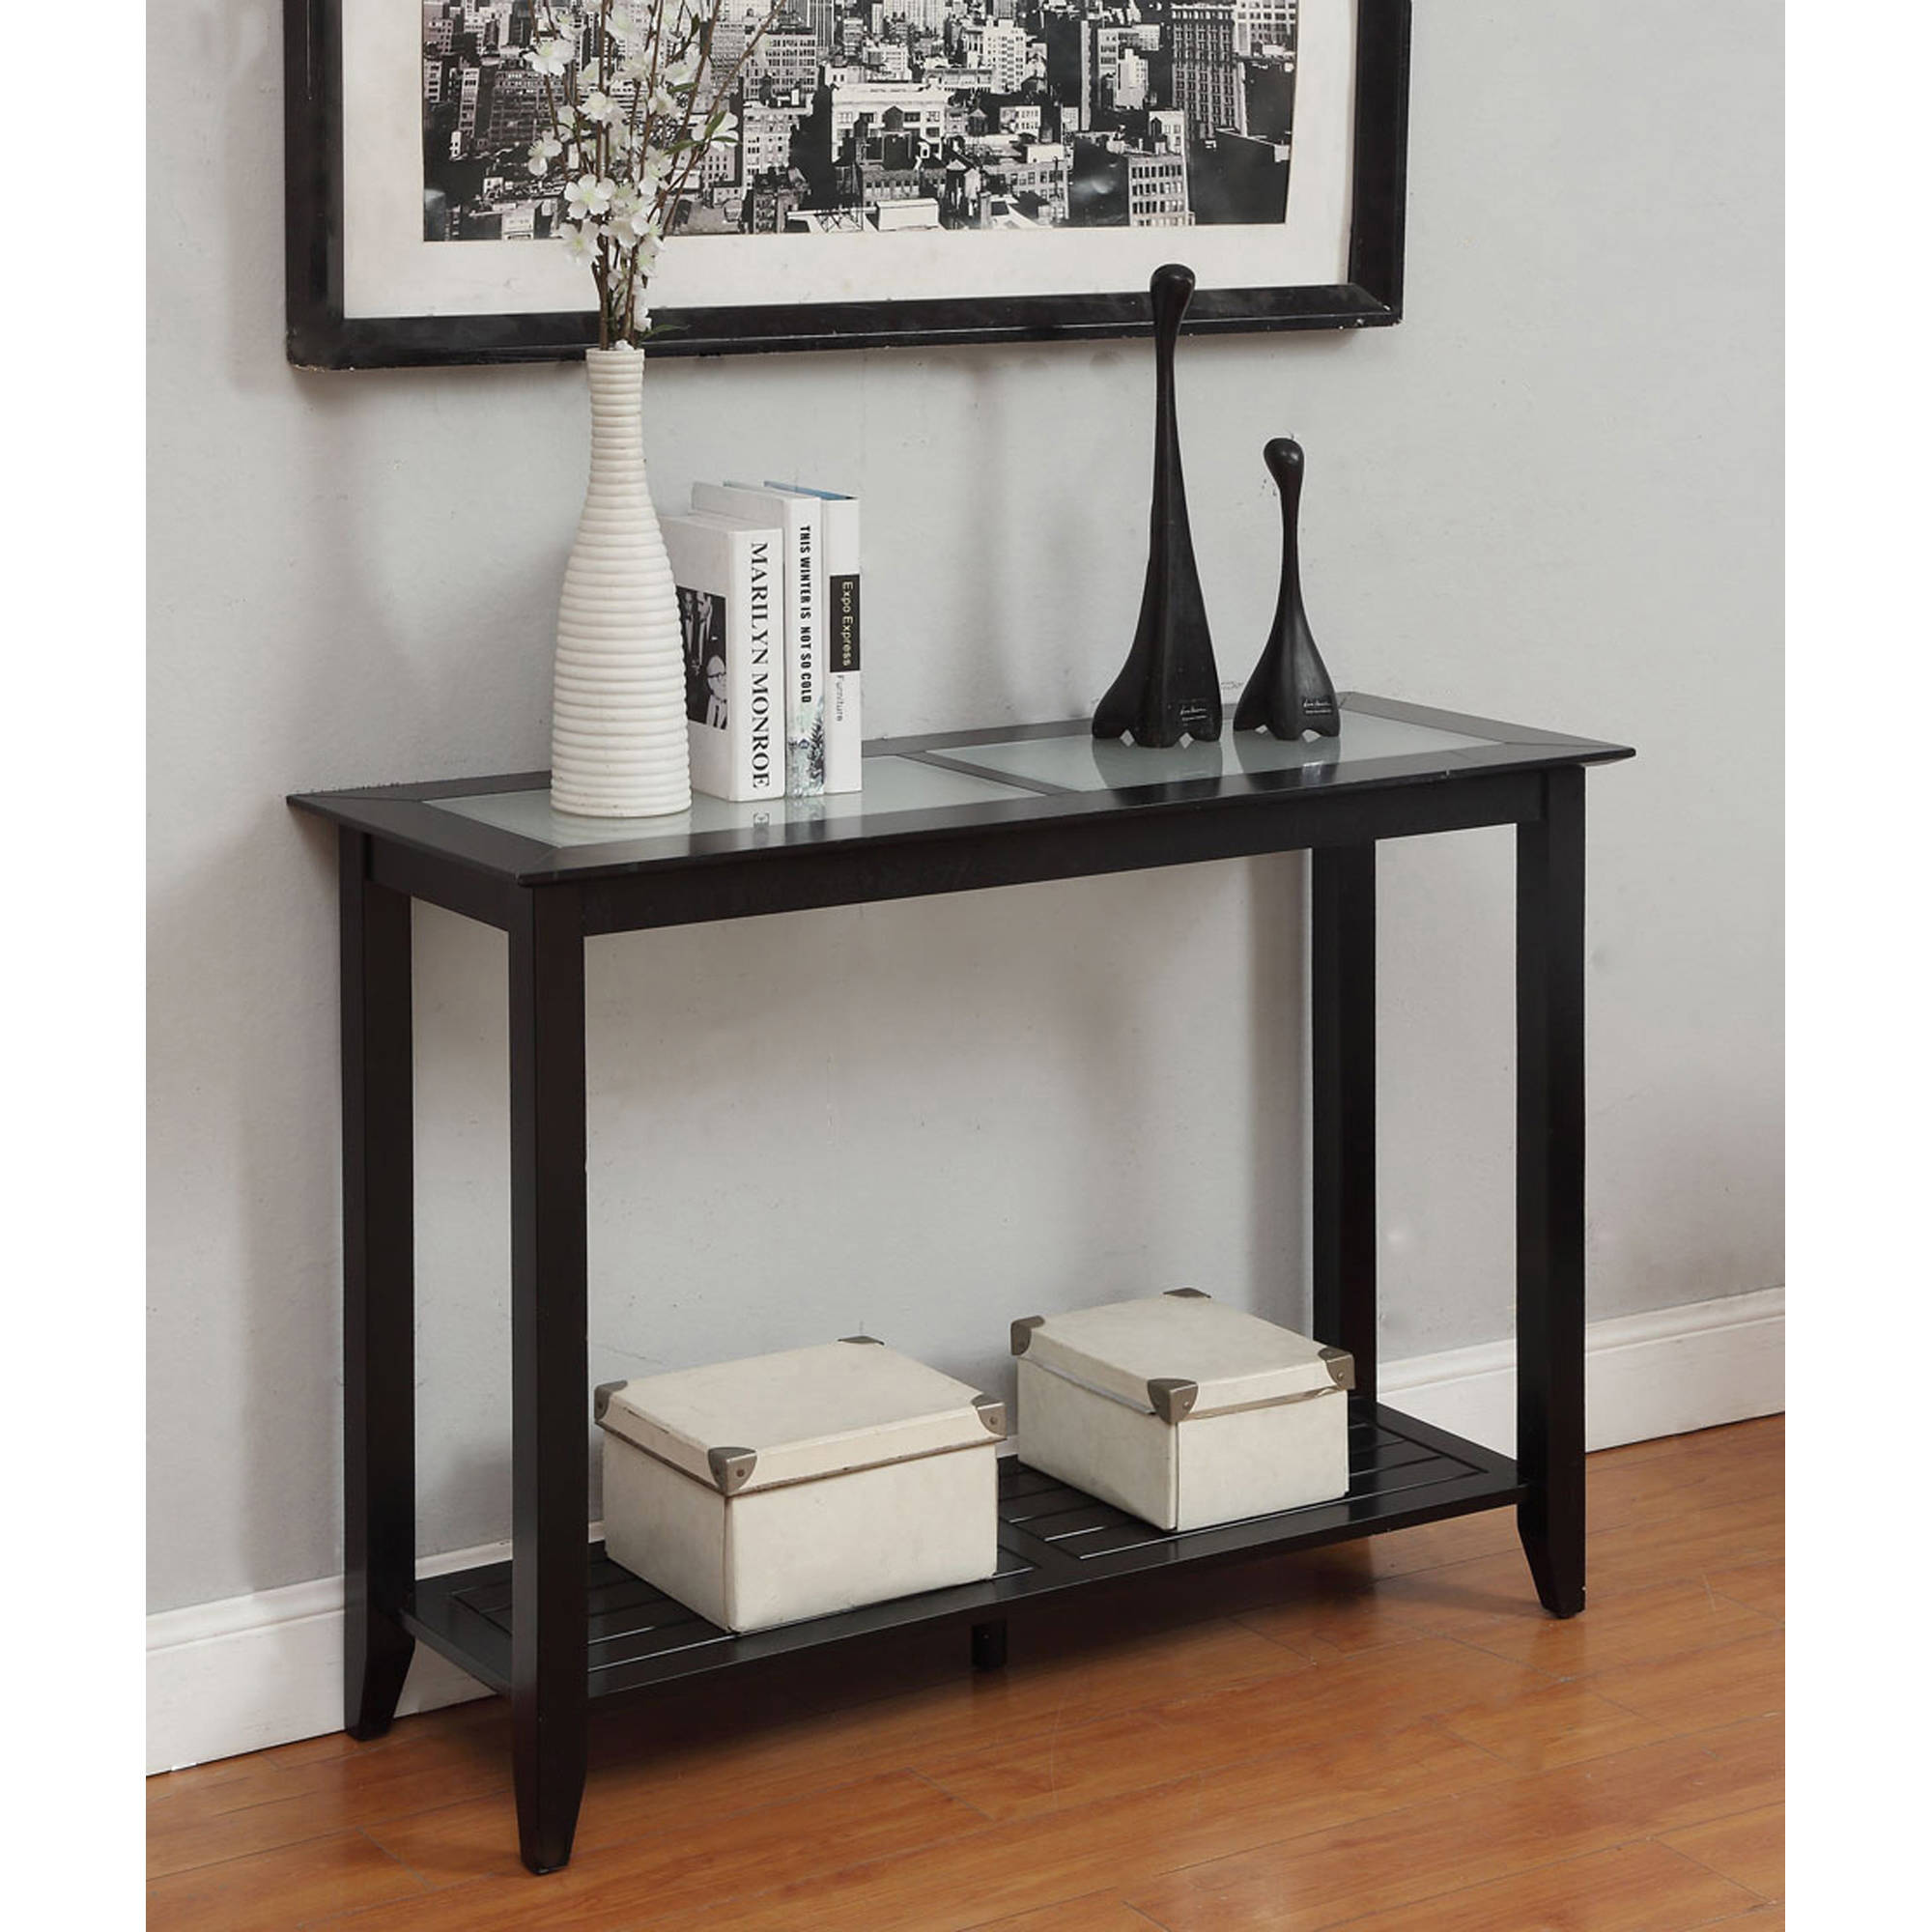 Convenience Concepts Carmel Console Table, Multiple Colors by Convenience Concepts